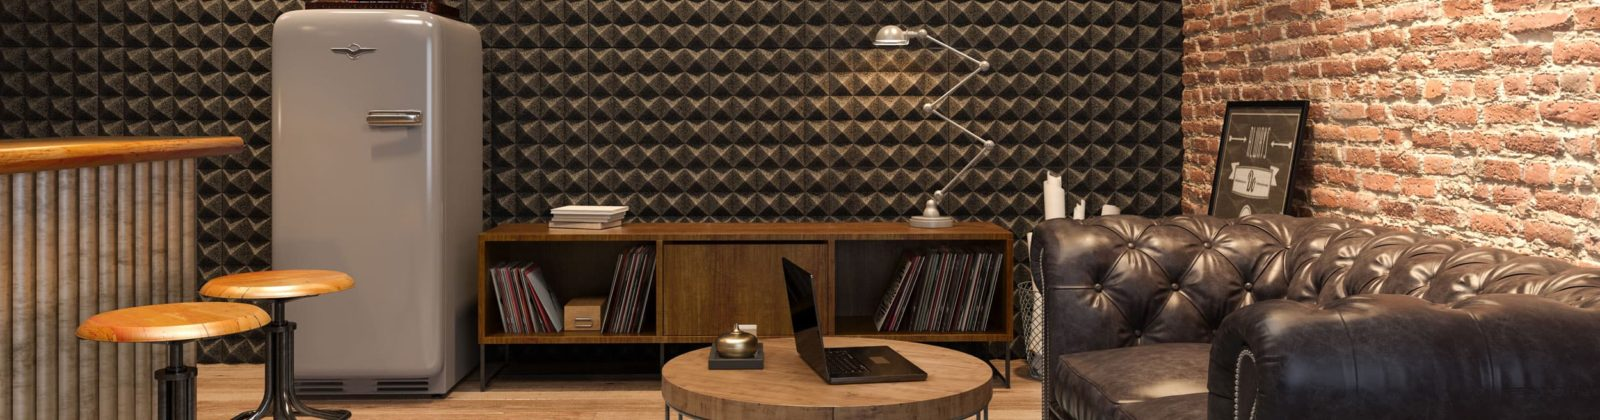 Commercial soundproofing